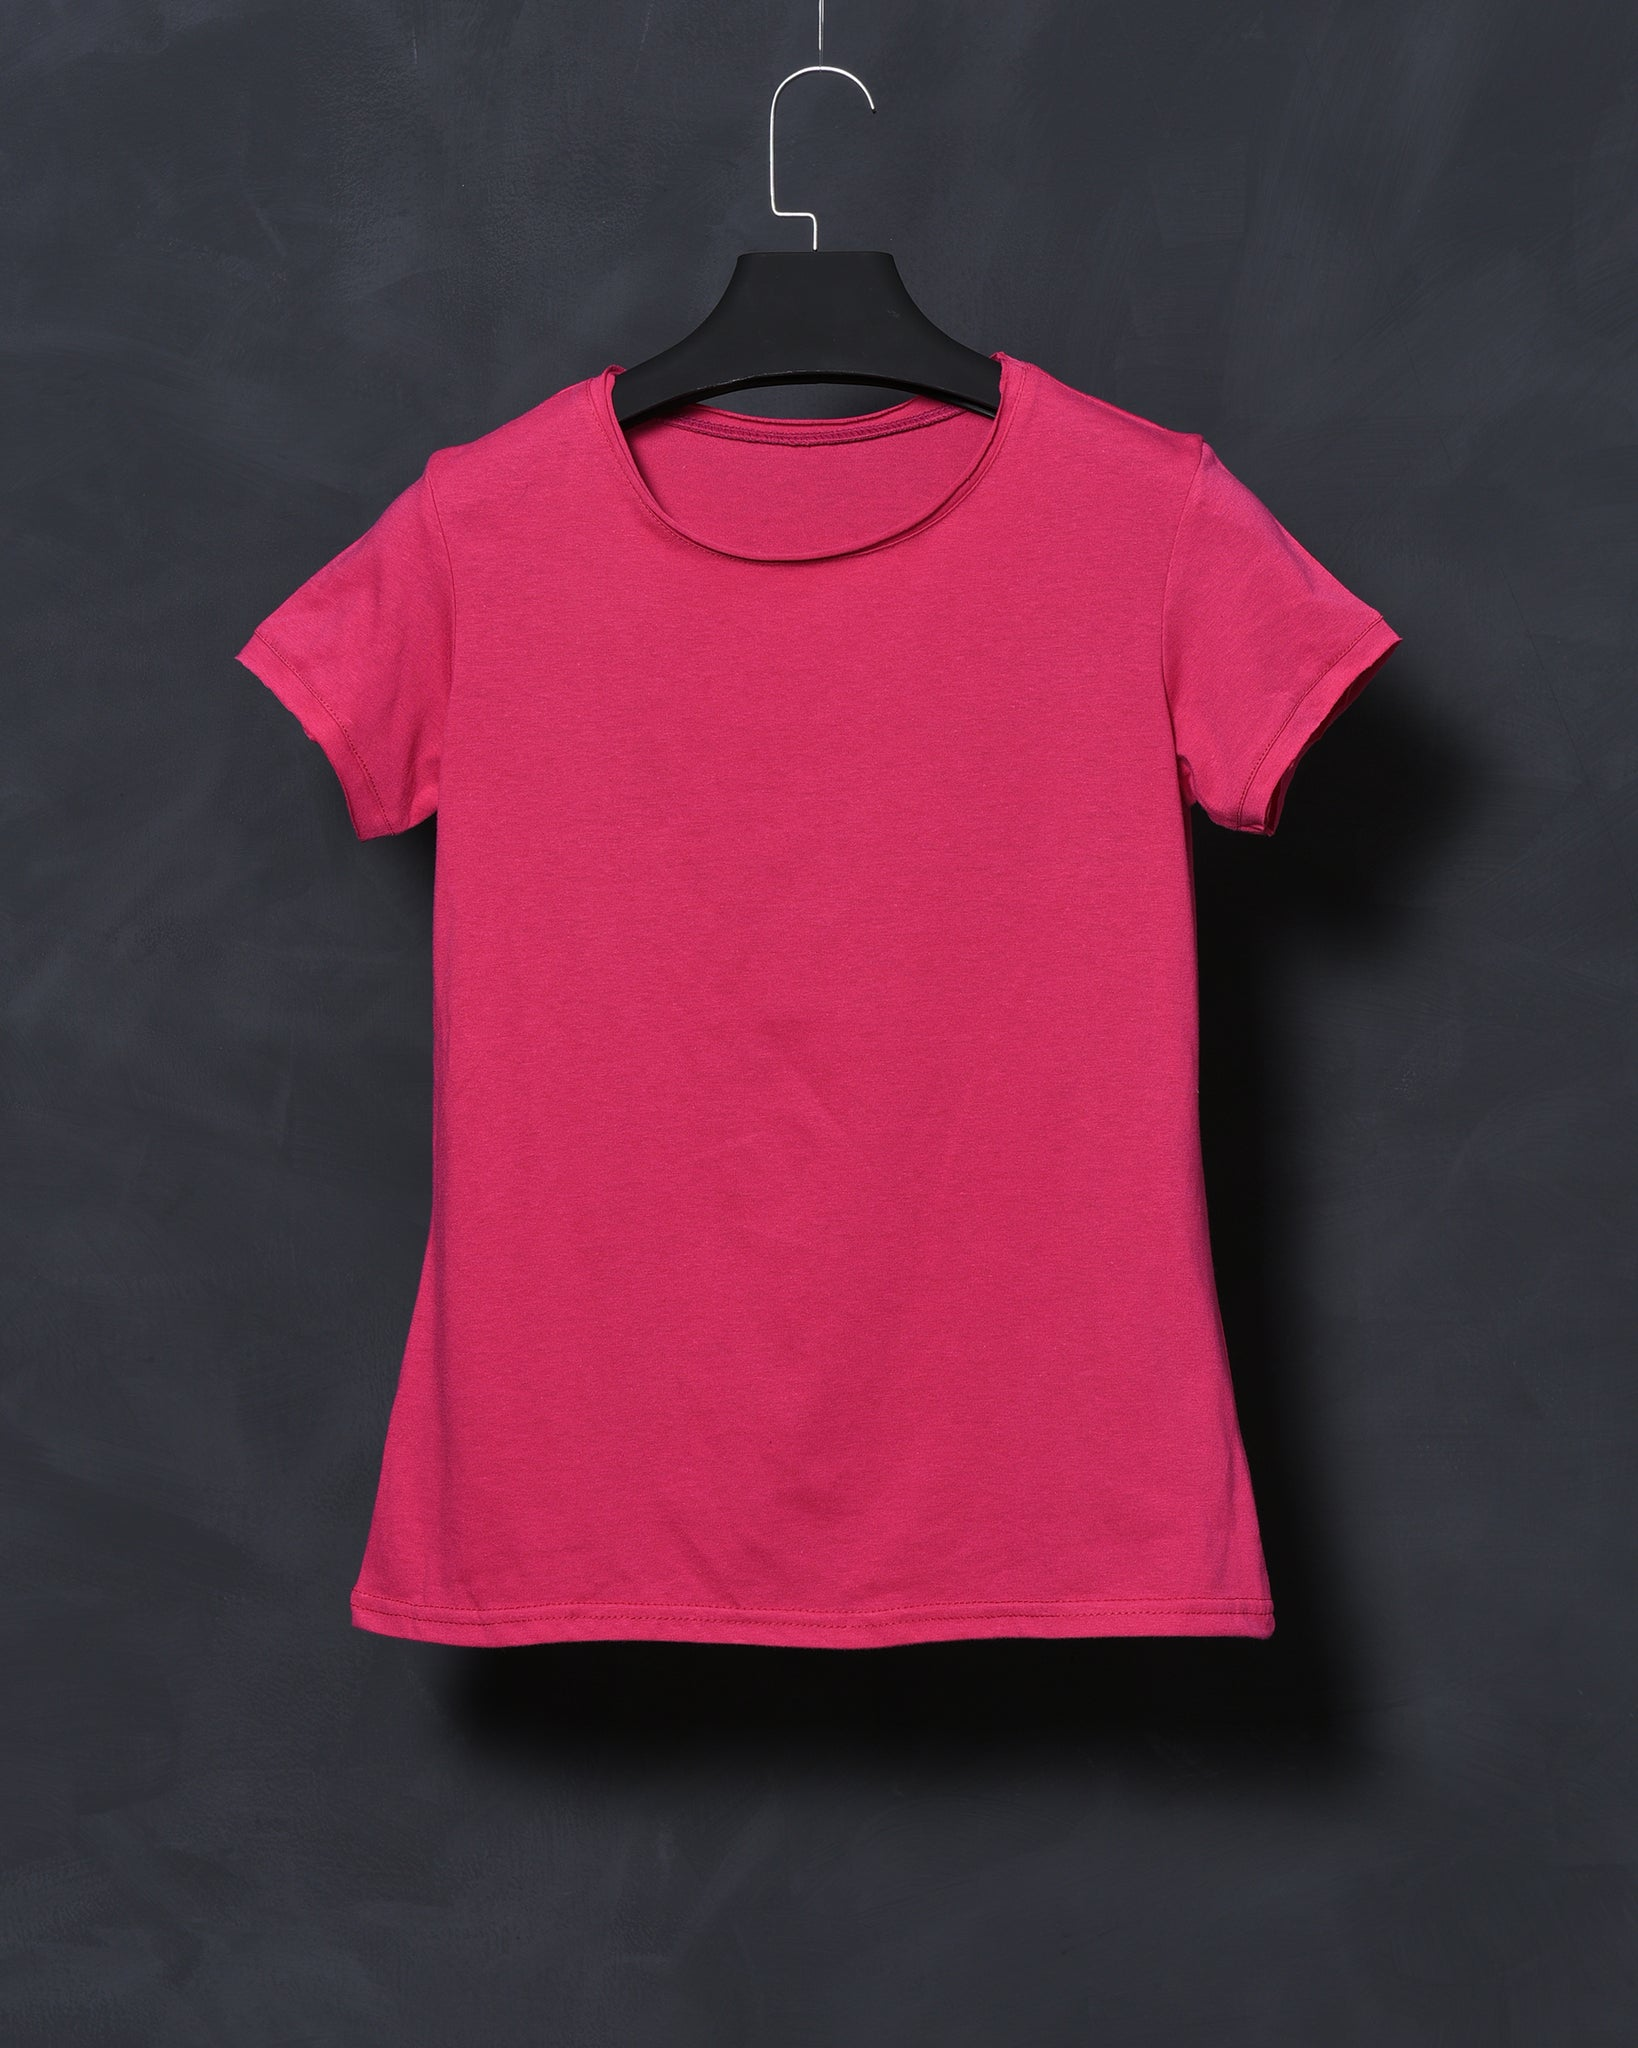 Pink T-shirt for Women